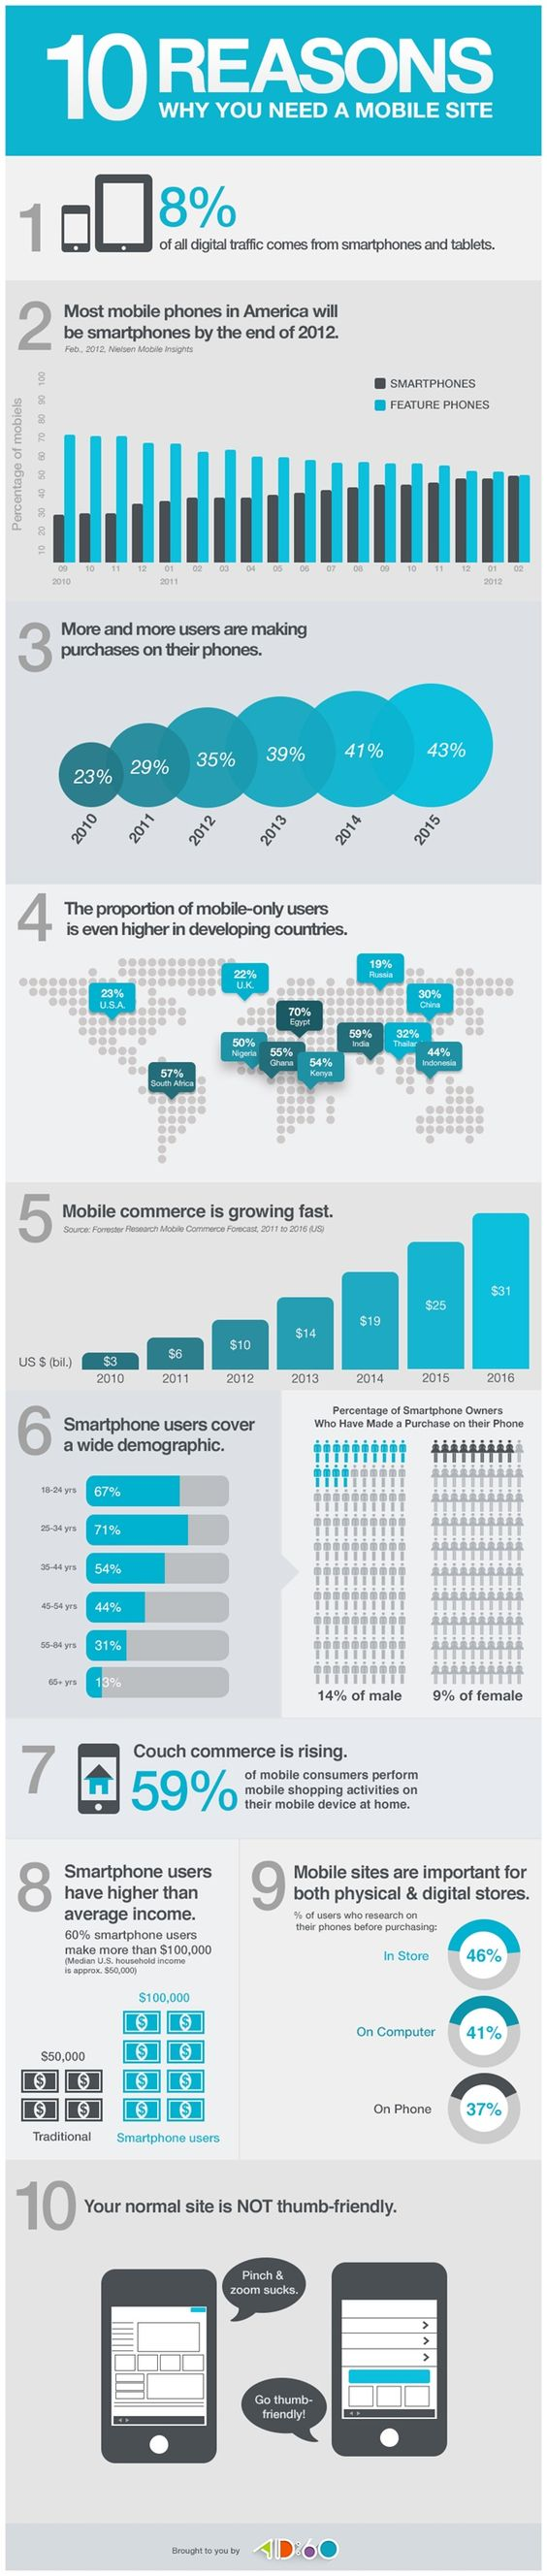 10 Reasons Why You Need a Mobile Site